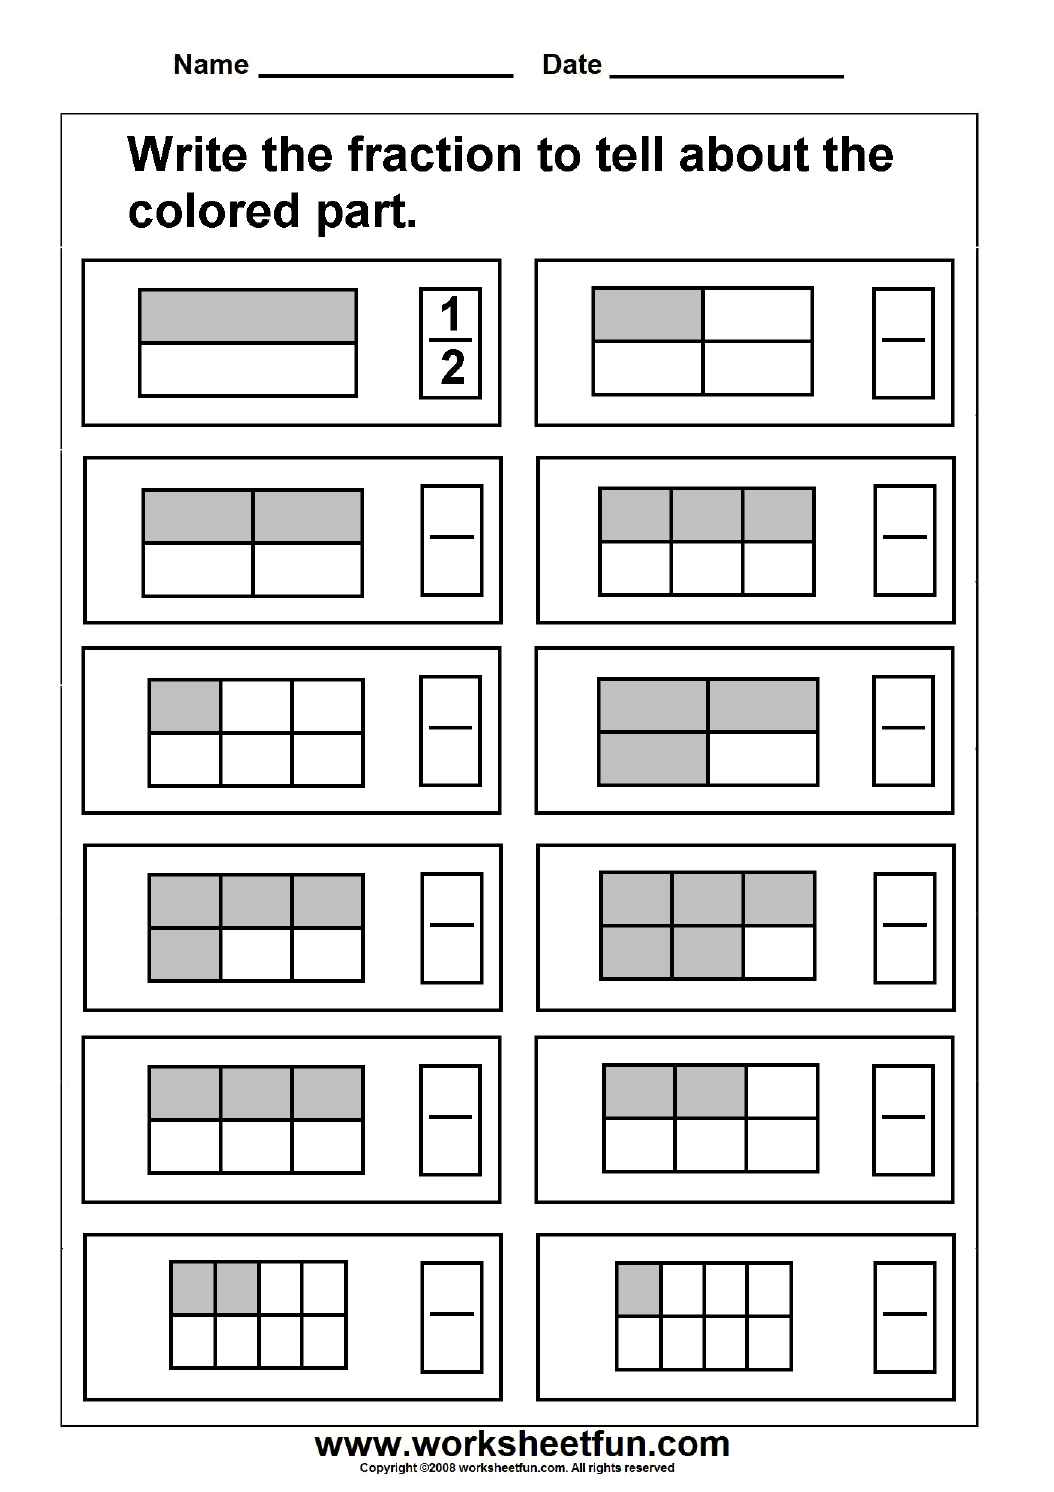 Fraction Model / Free Printable Worksheets – Worksheetfun - Free Printable Fraction Worksheets